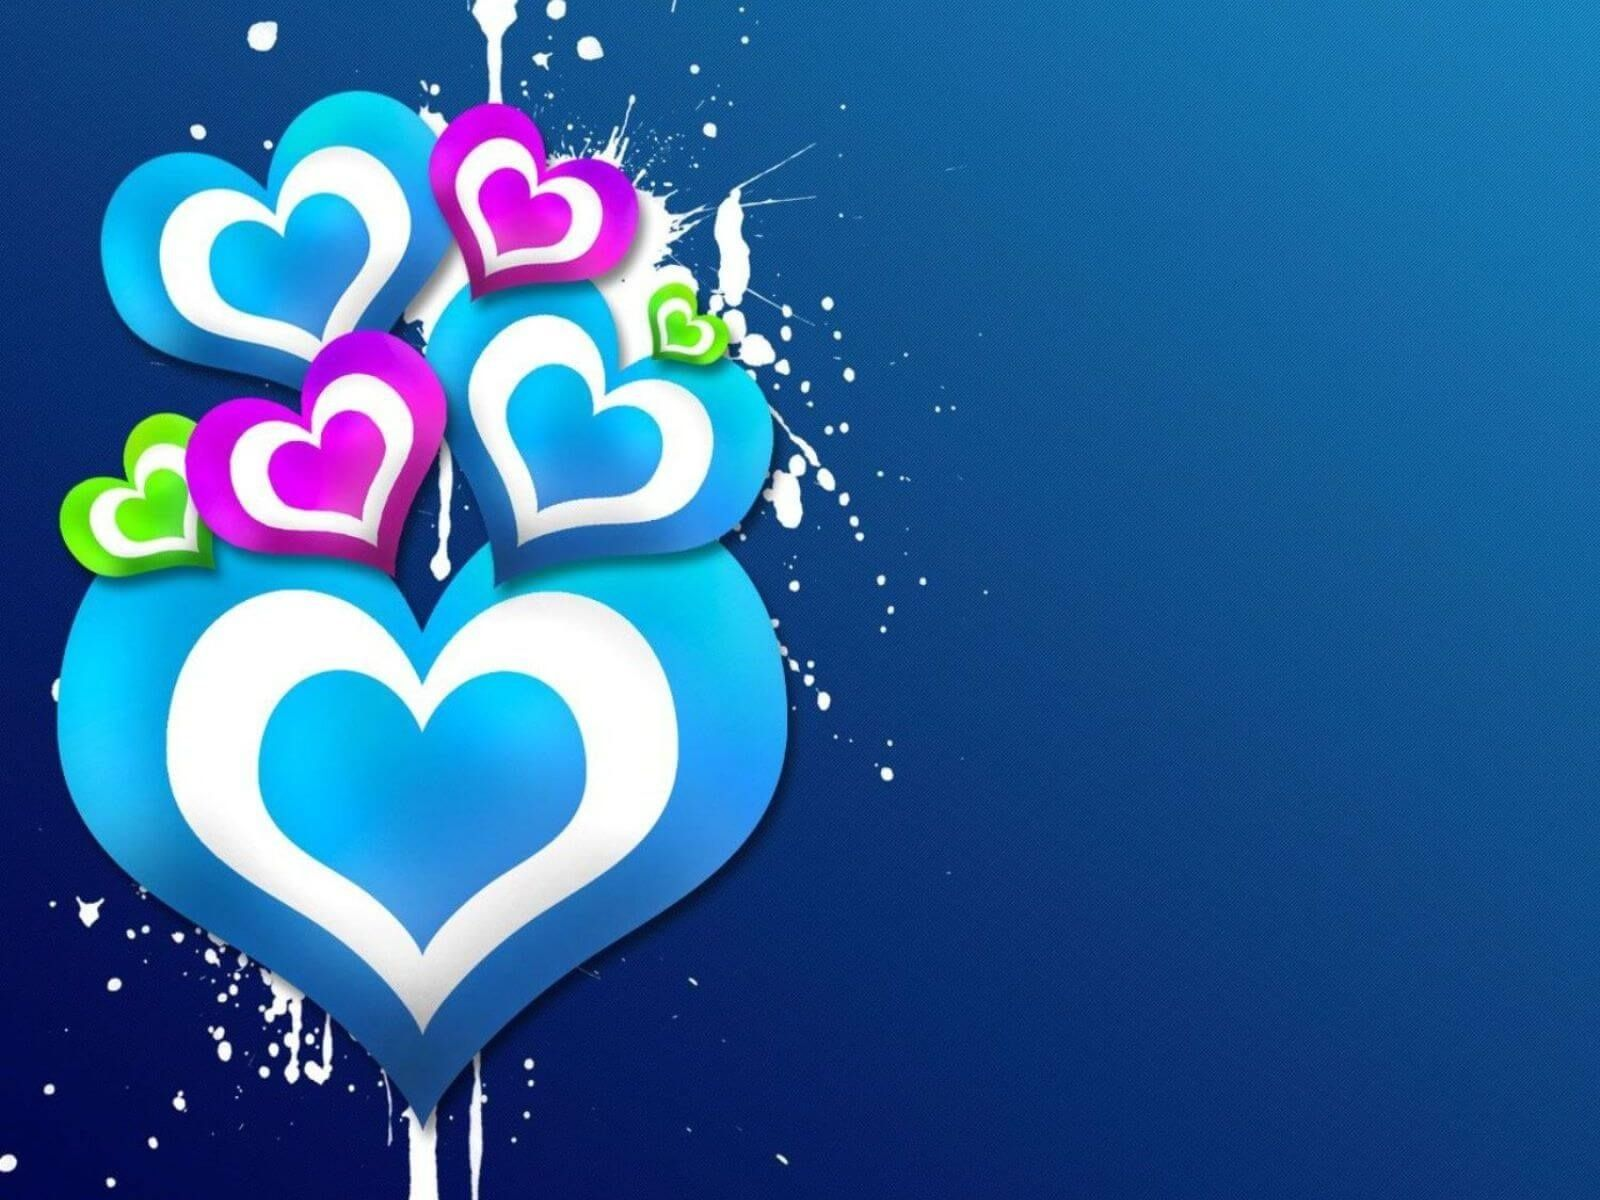 Love Abstract Design Wallpapers HD 1366x768 51